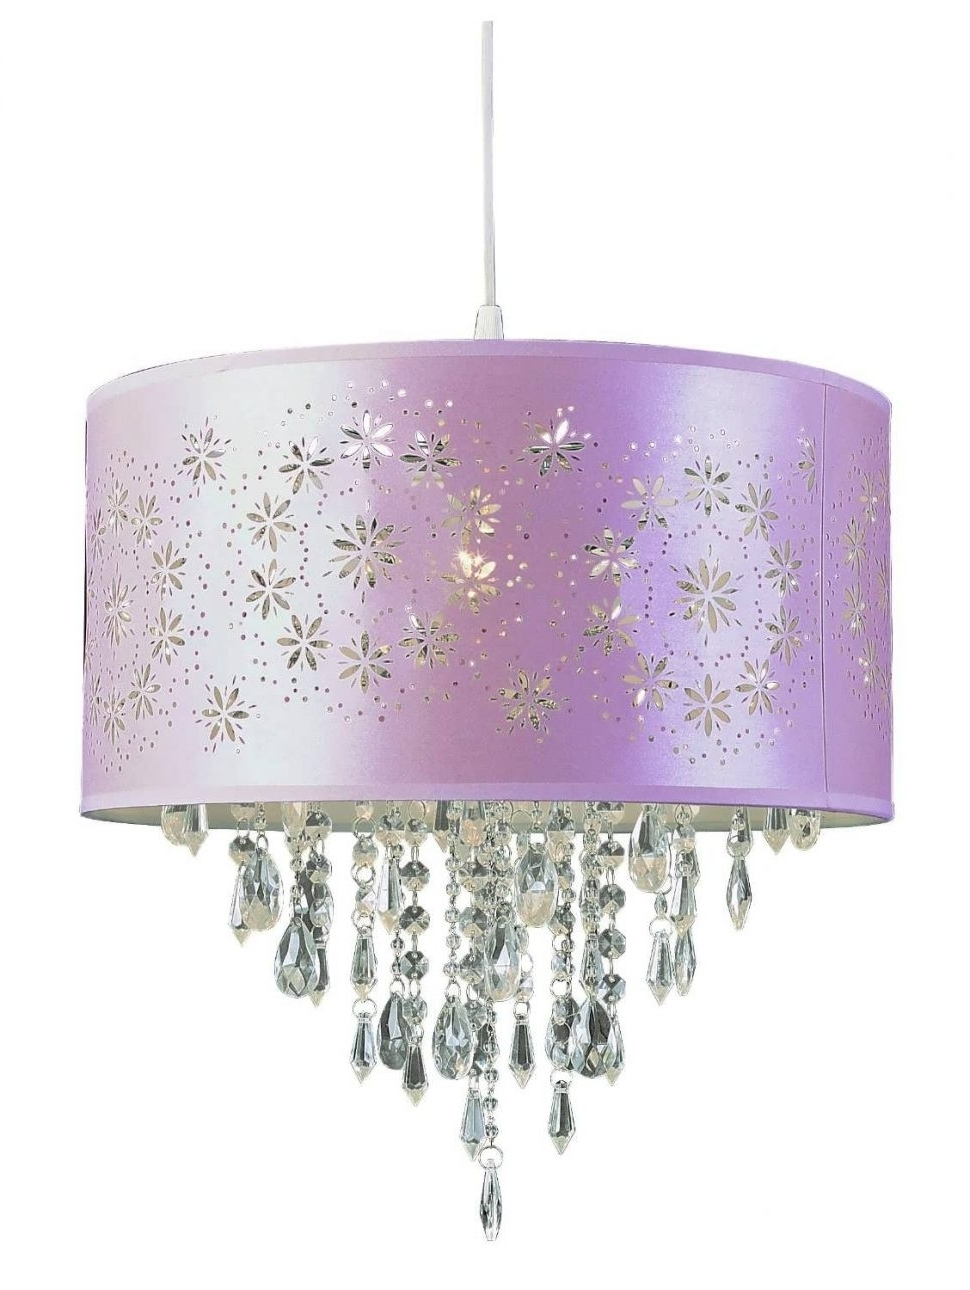 Widely Used Chandeliers For Kids Within Wonderful Bedroom Lights For Girls Chandelier Kids Room Antique (View 6 of 20)